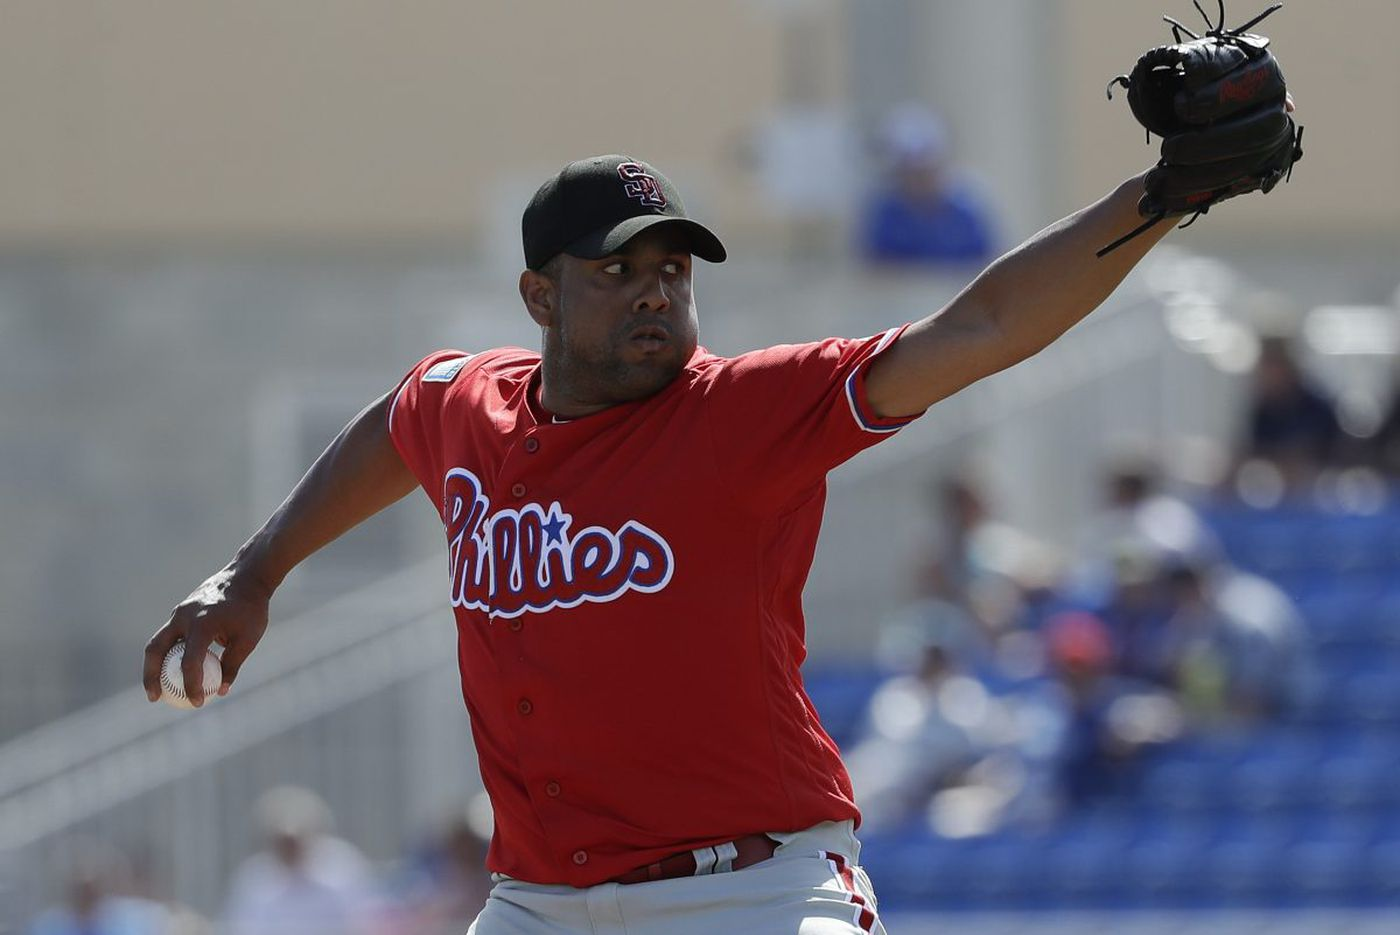 Phillies pitcher Francisco Rodriguez still has the desire to return to the once-great K-Rod form